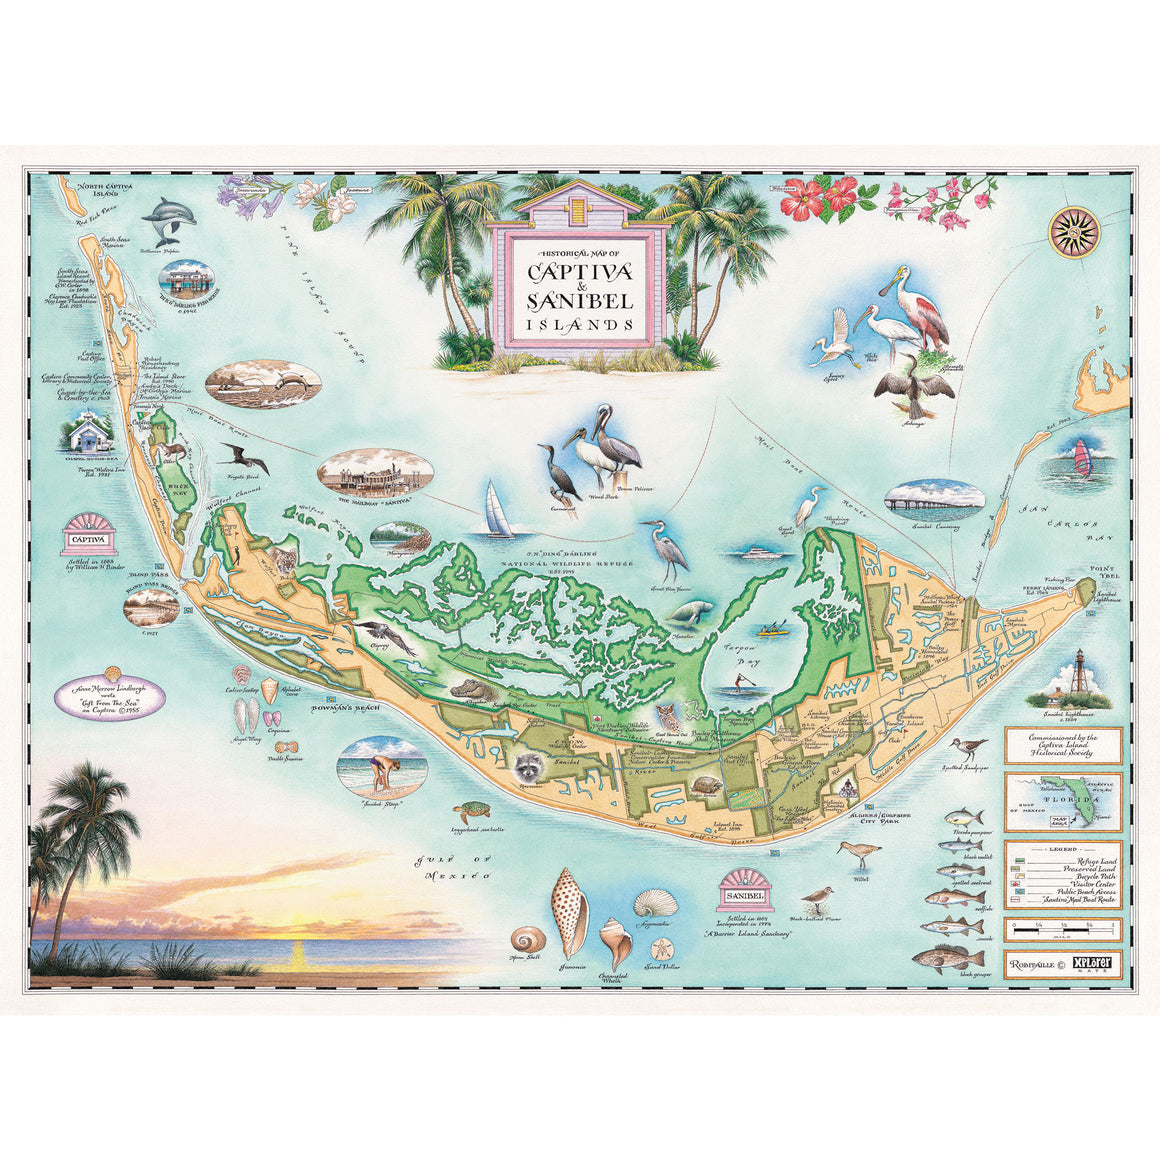 Sanibel-Captiva Islands Map